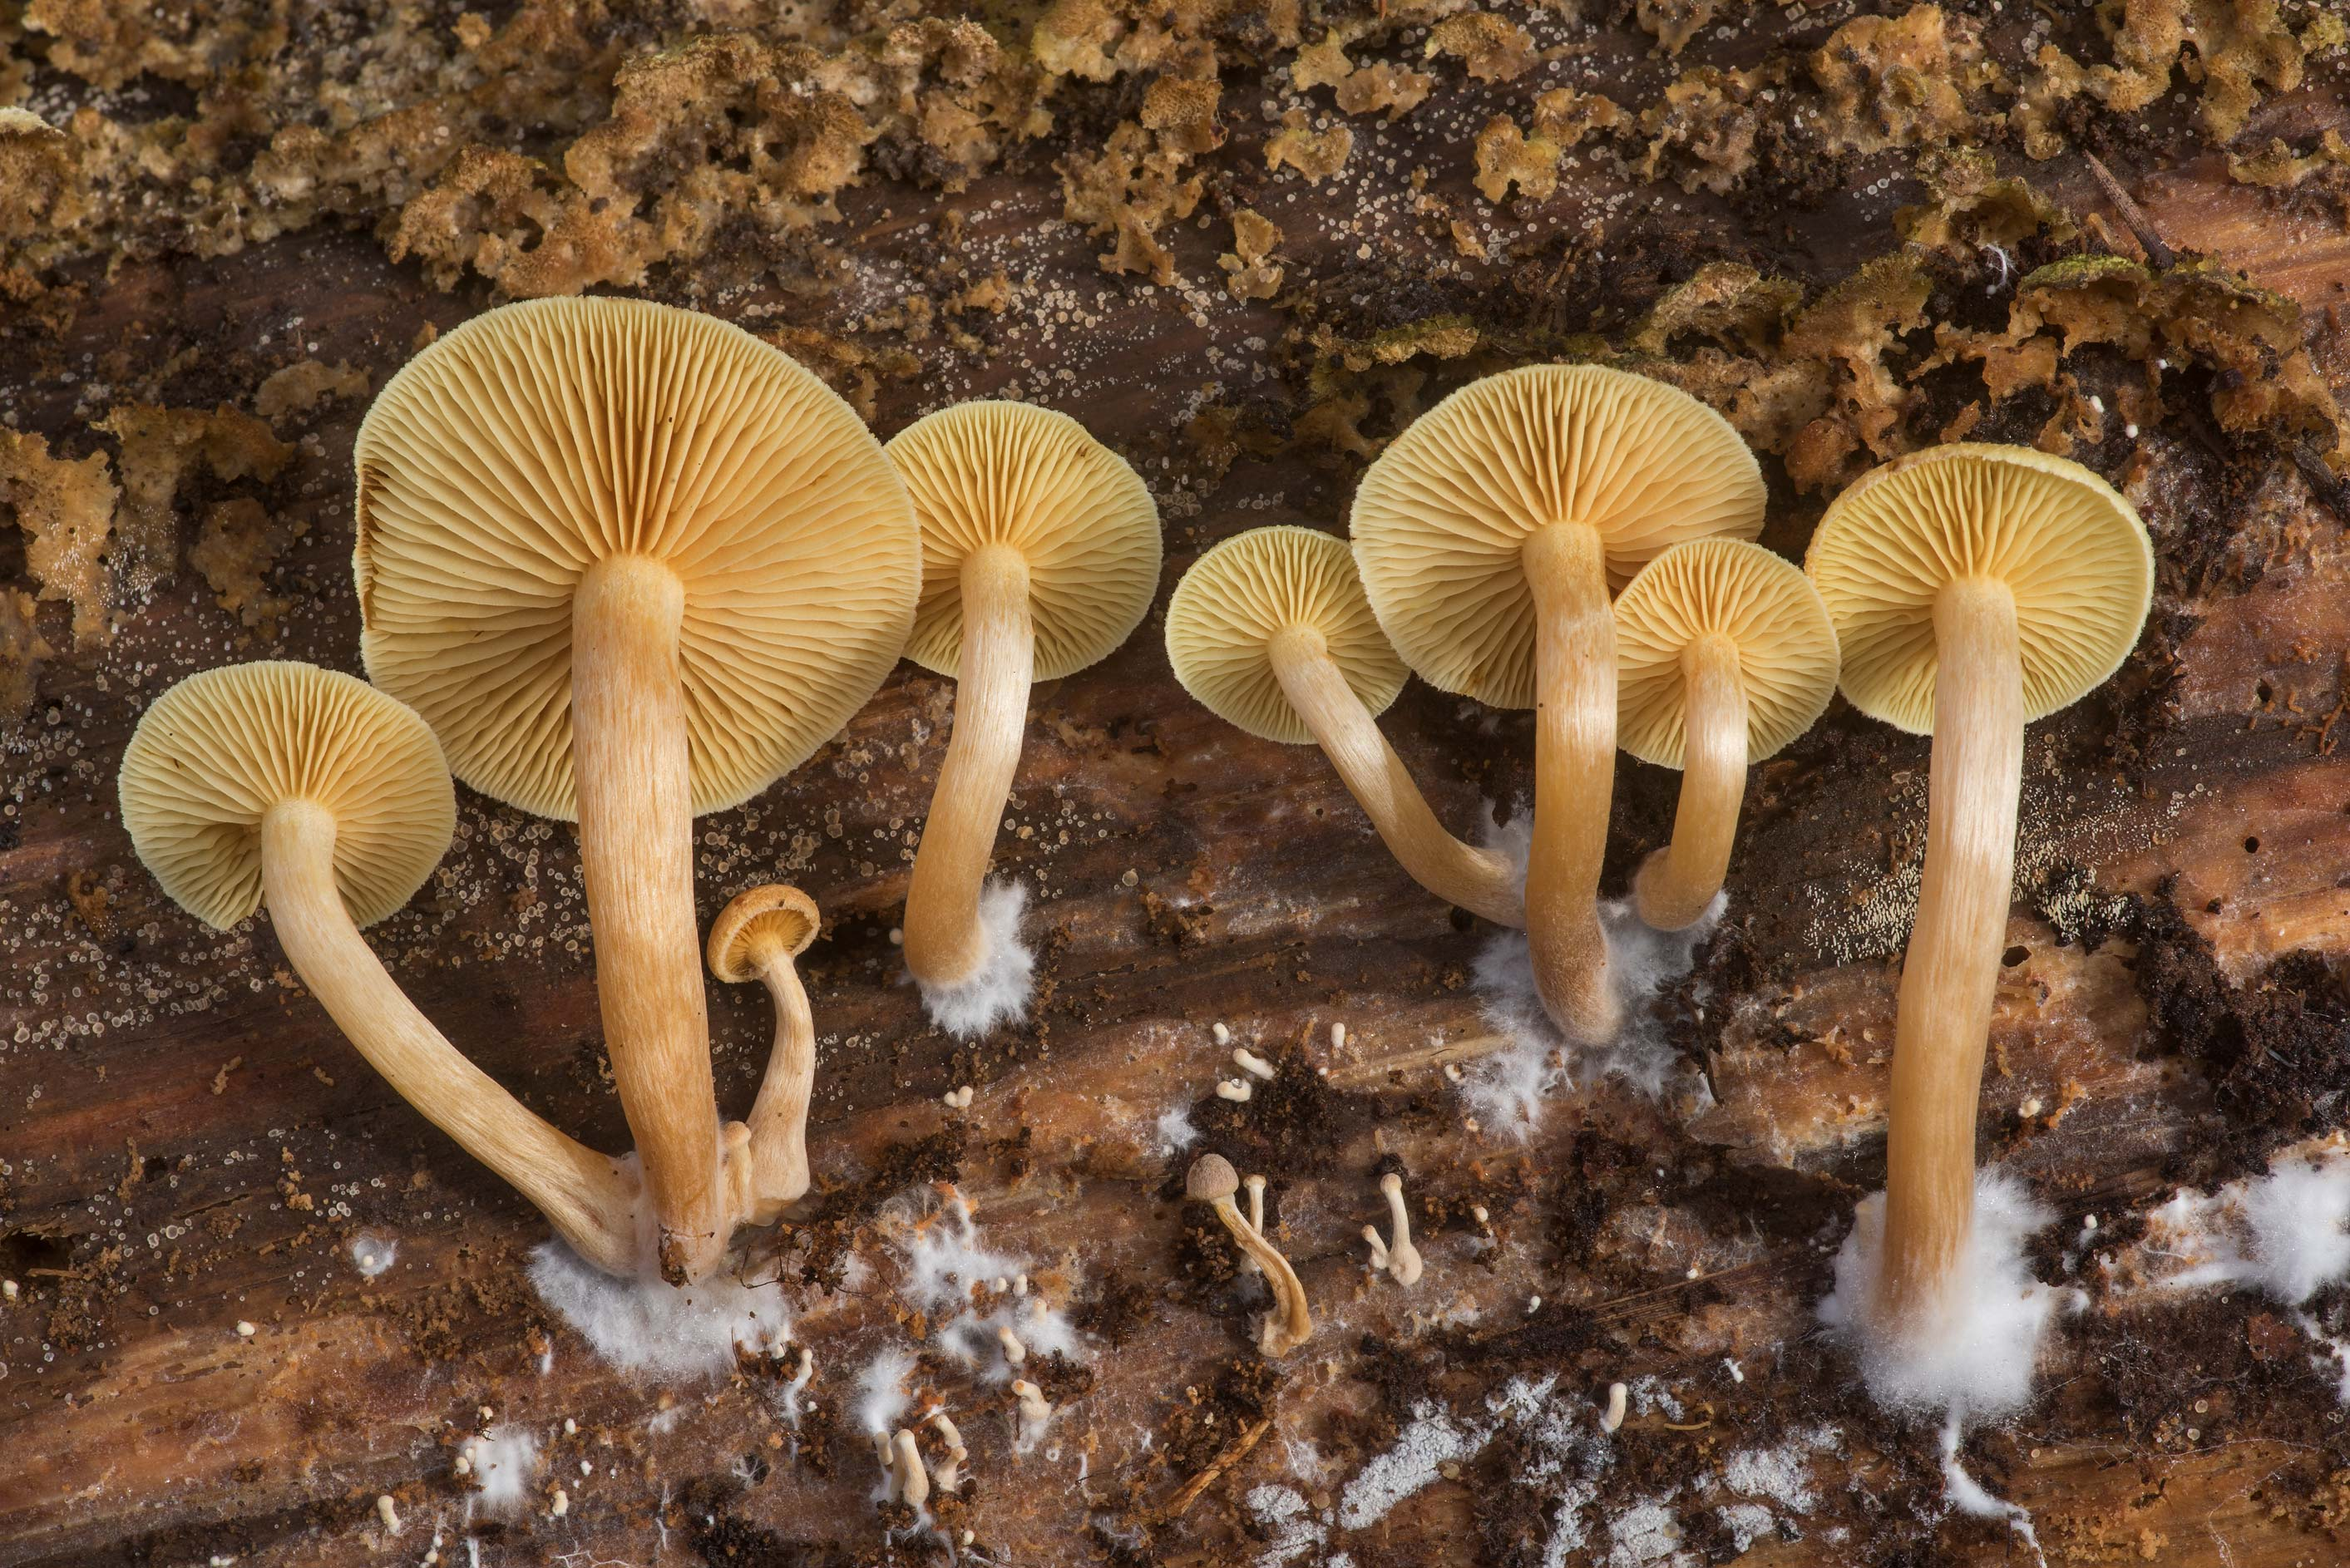 Common rustgill mushrooms (Gymnopilus penetrans...Native Plant Preserve. Warren, Texas